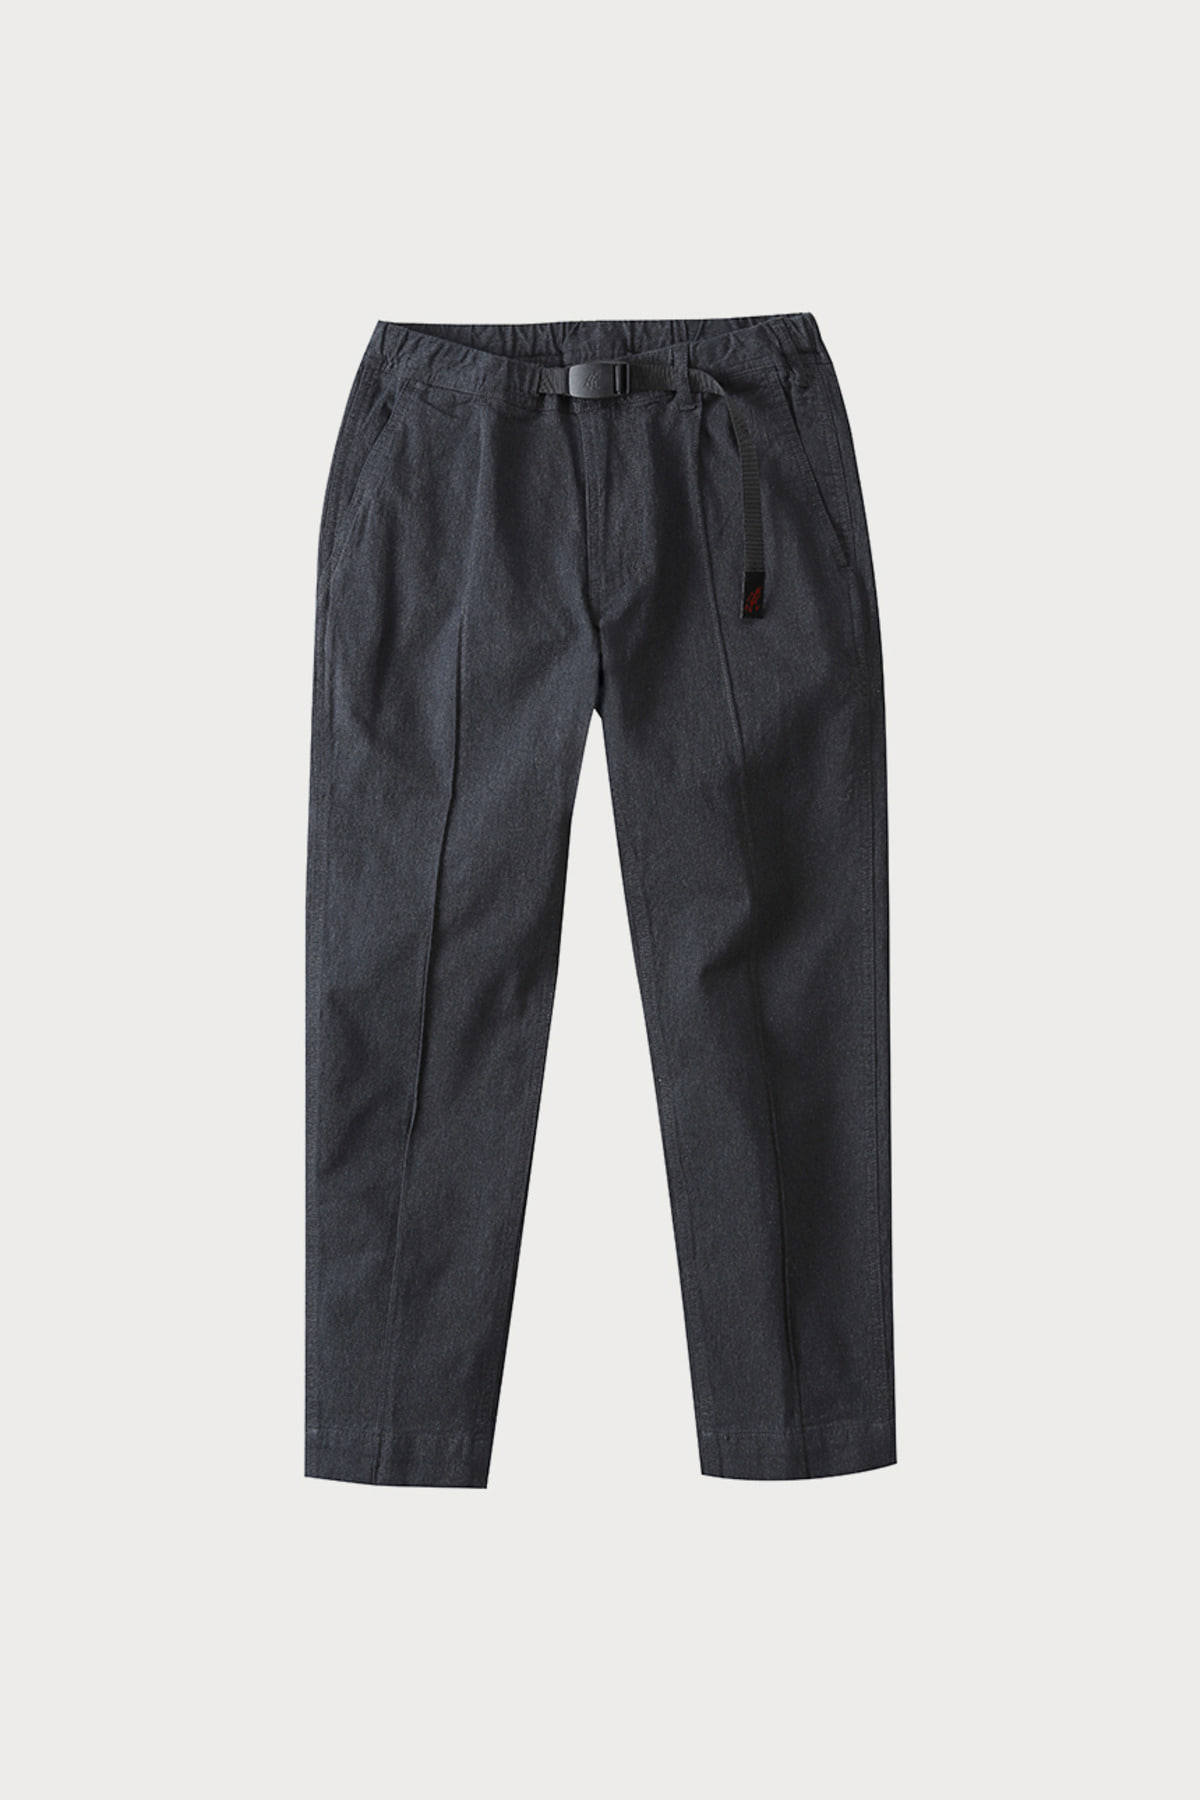 PINTUCK PANTS HEATHER CHARCOAL